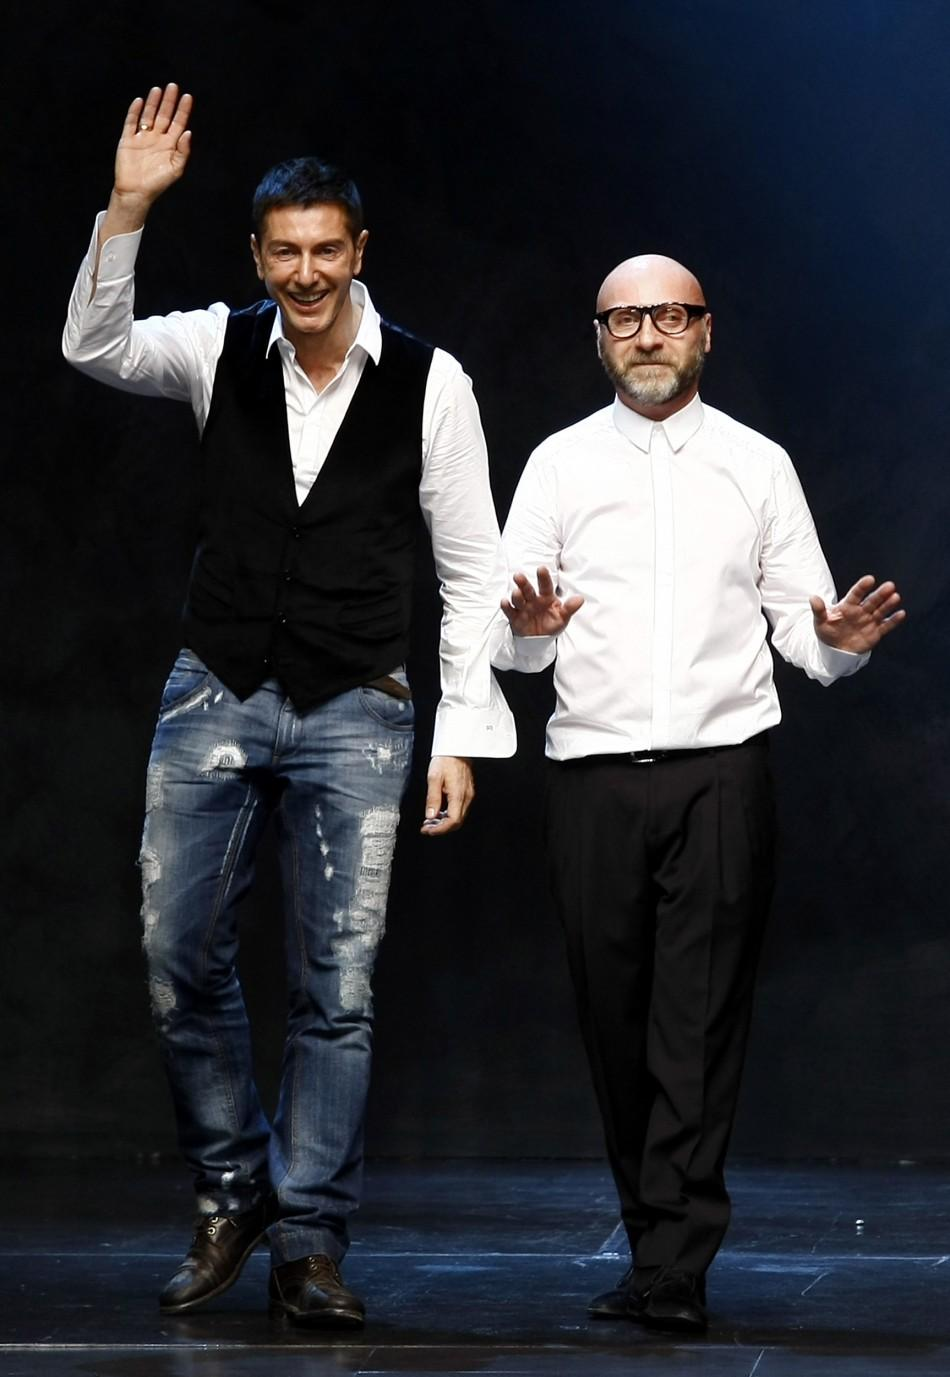 Designers Dolce and Gabbana at Milan Fashion Week